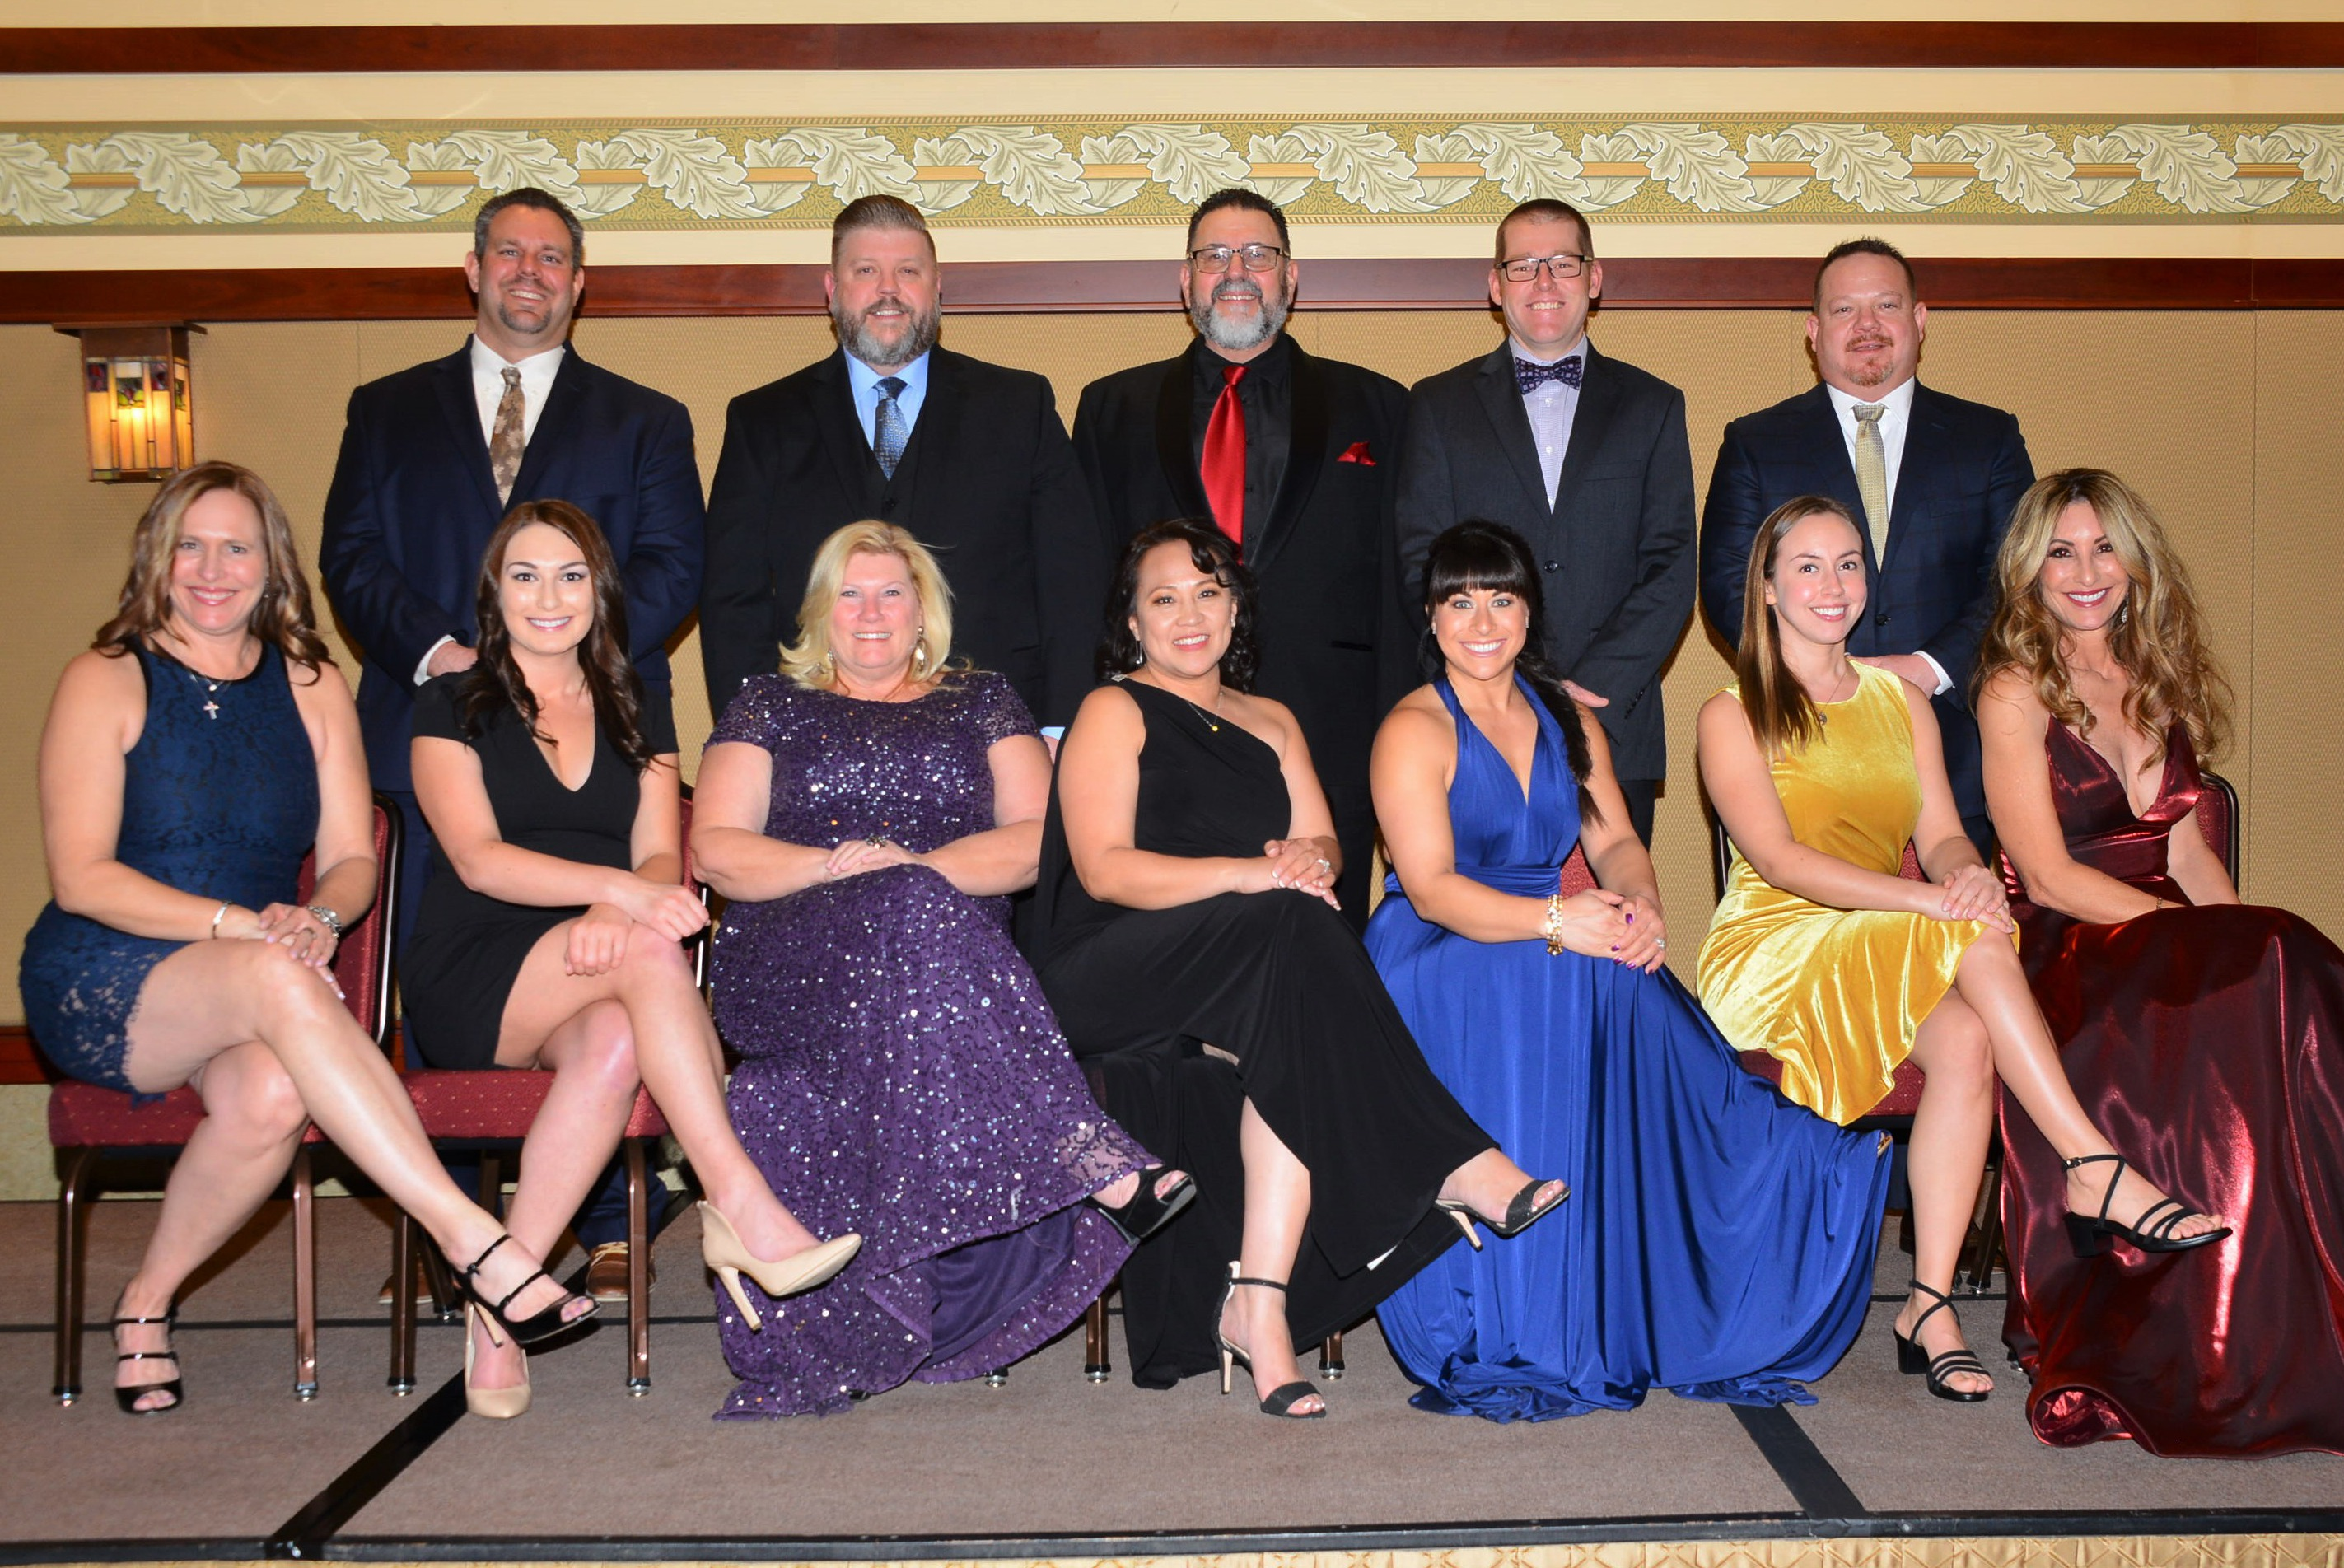 The 2019 Dinner Dance Committee